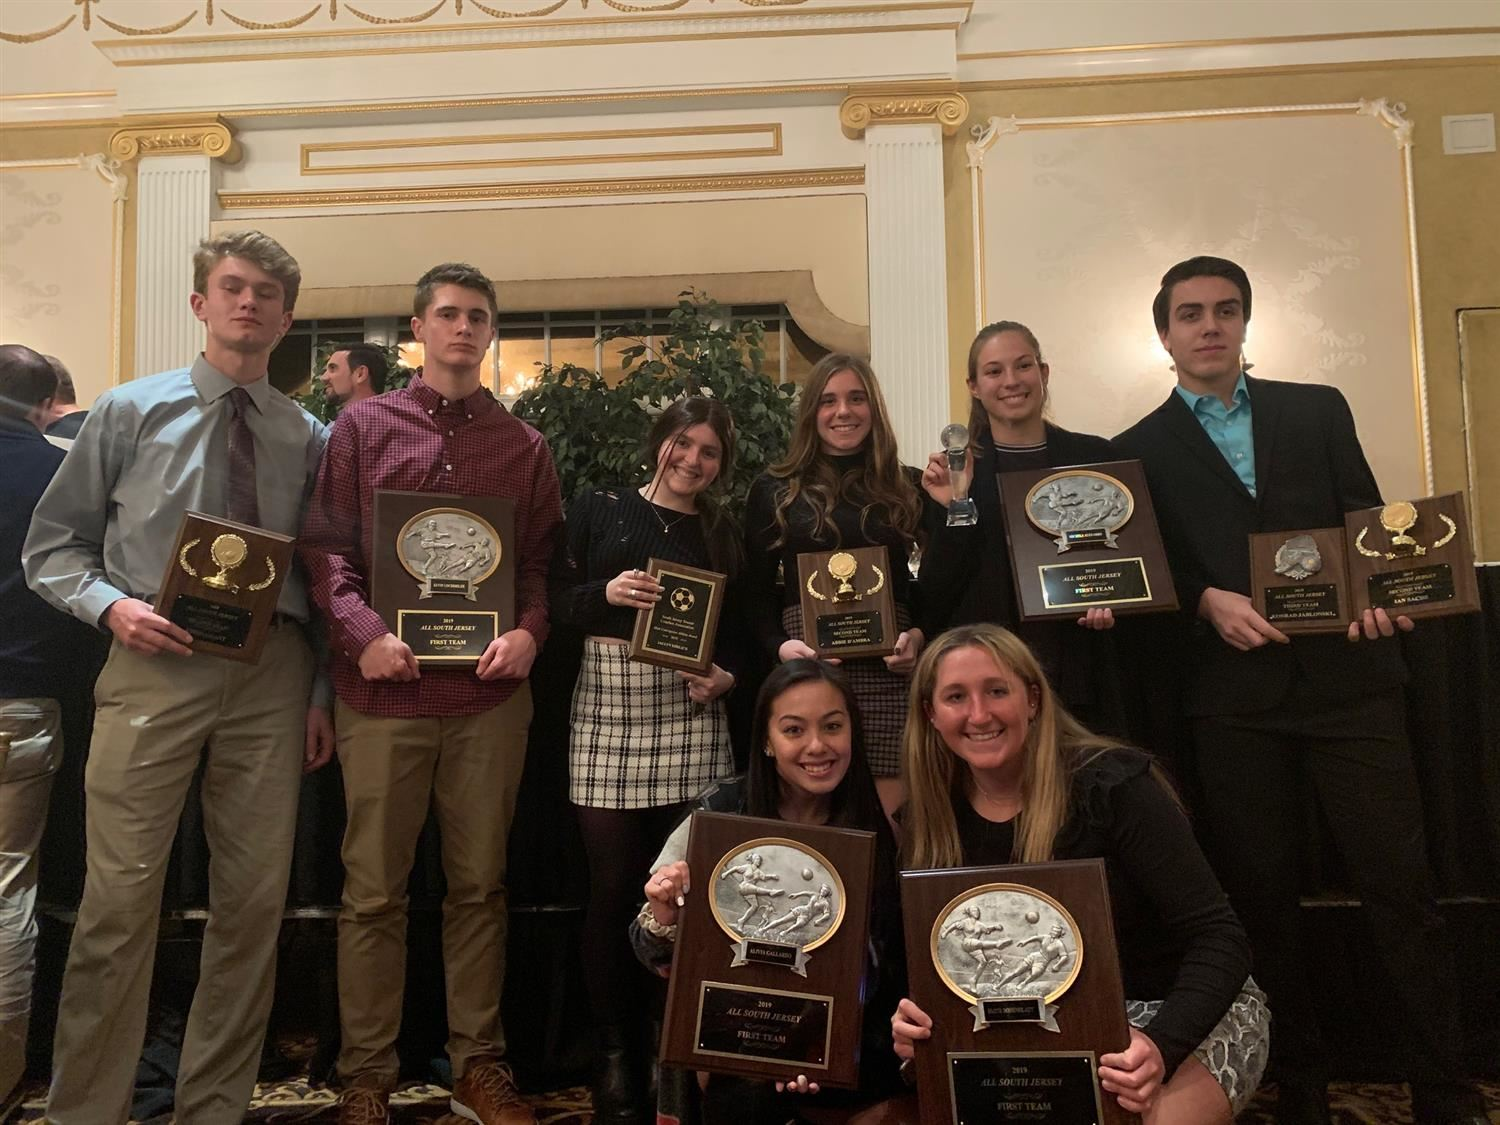 CHPS Students with Athletic Awards